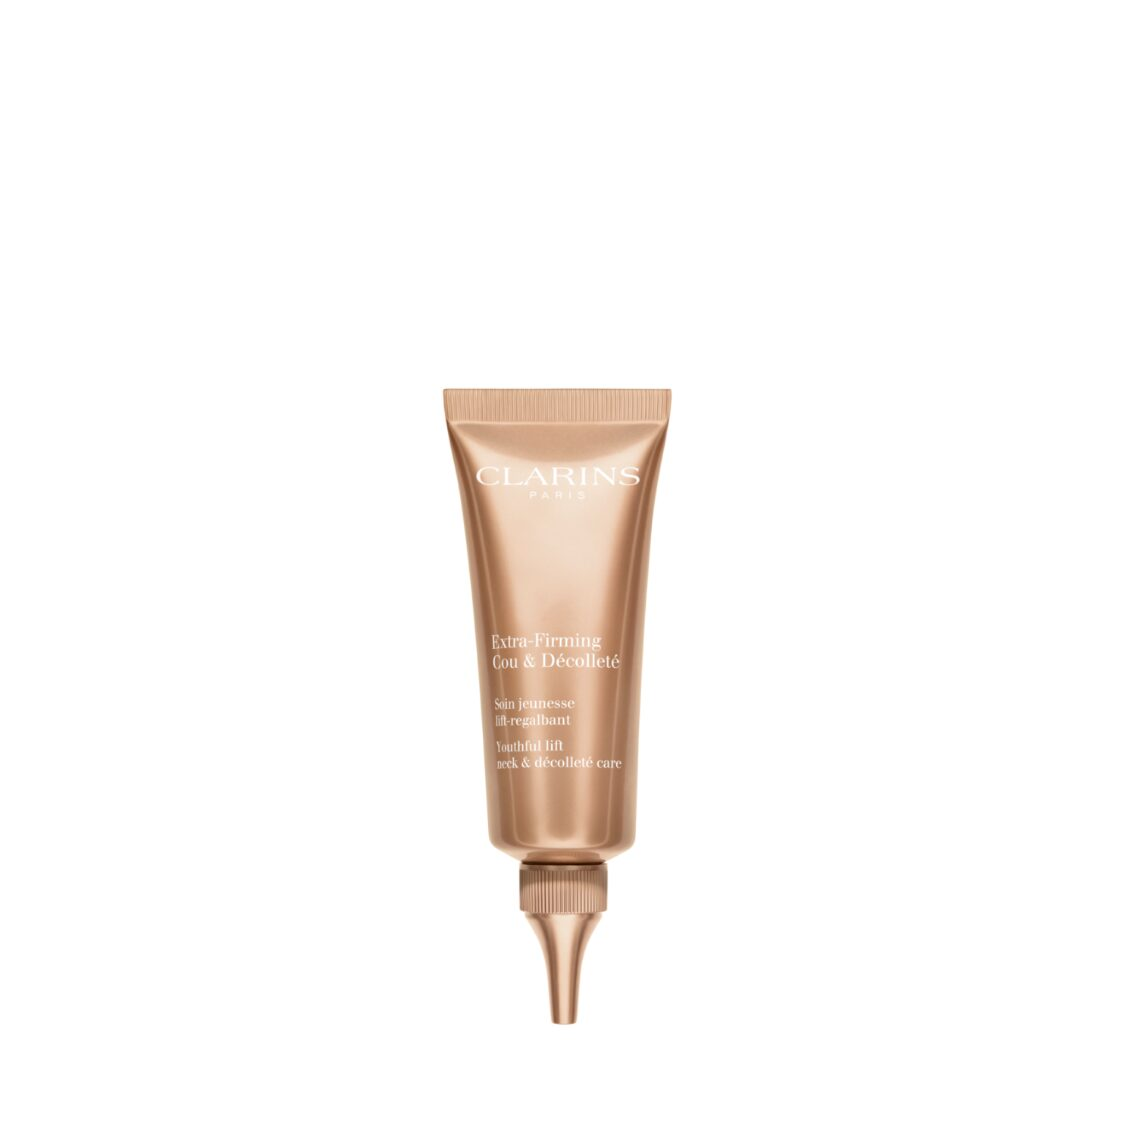 Clarins Extra-Firming Neck and Dcollet 75ml